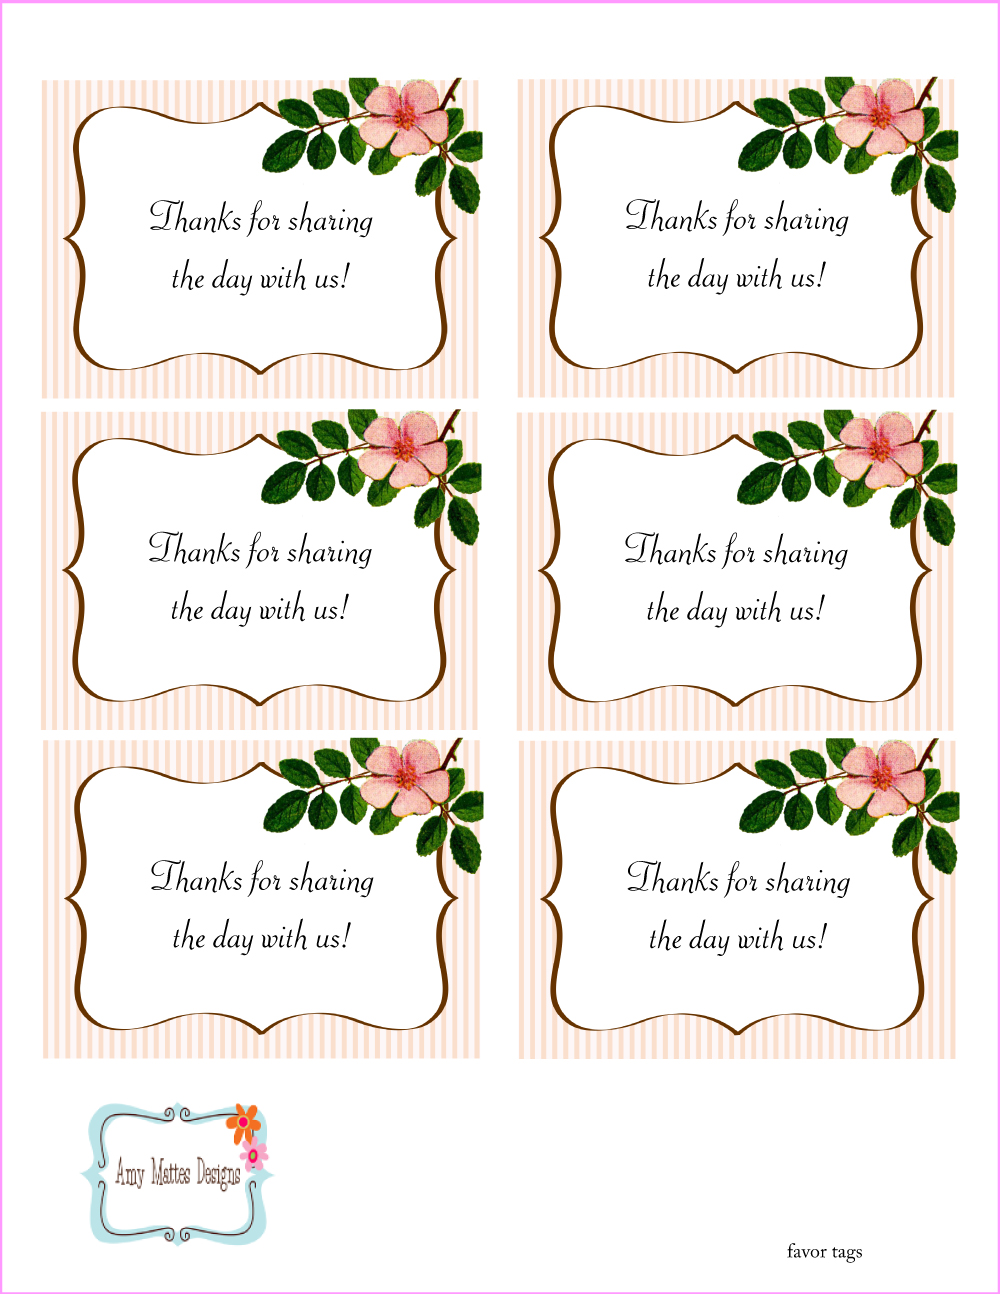 free mother 39 s day printables from amy mattes designs catch my party. Black Bedroom Furniture Sets. Home Design Ideas